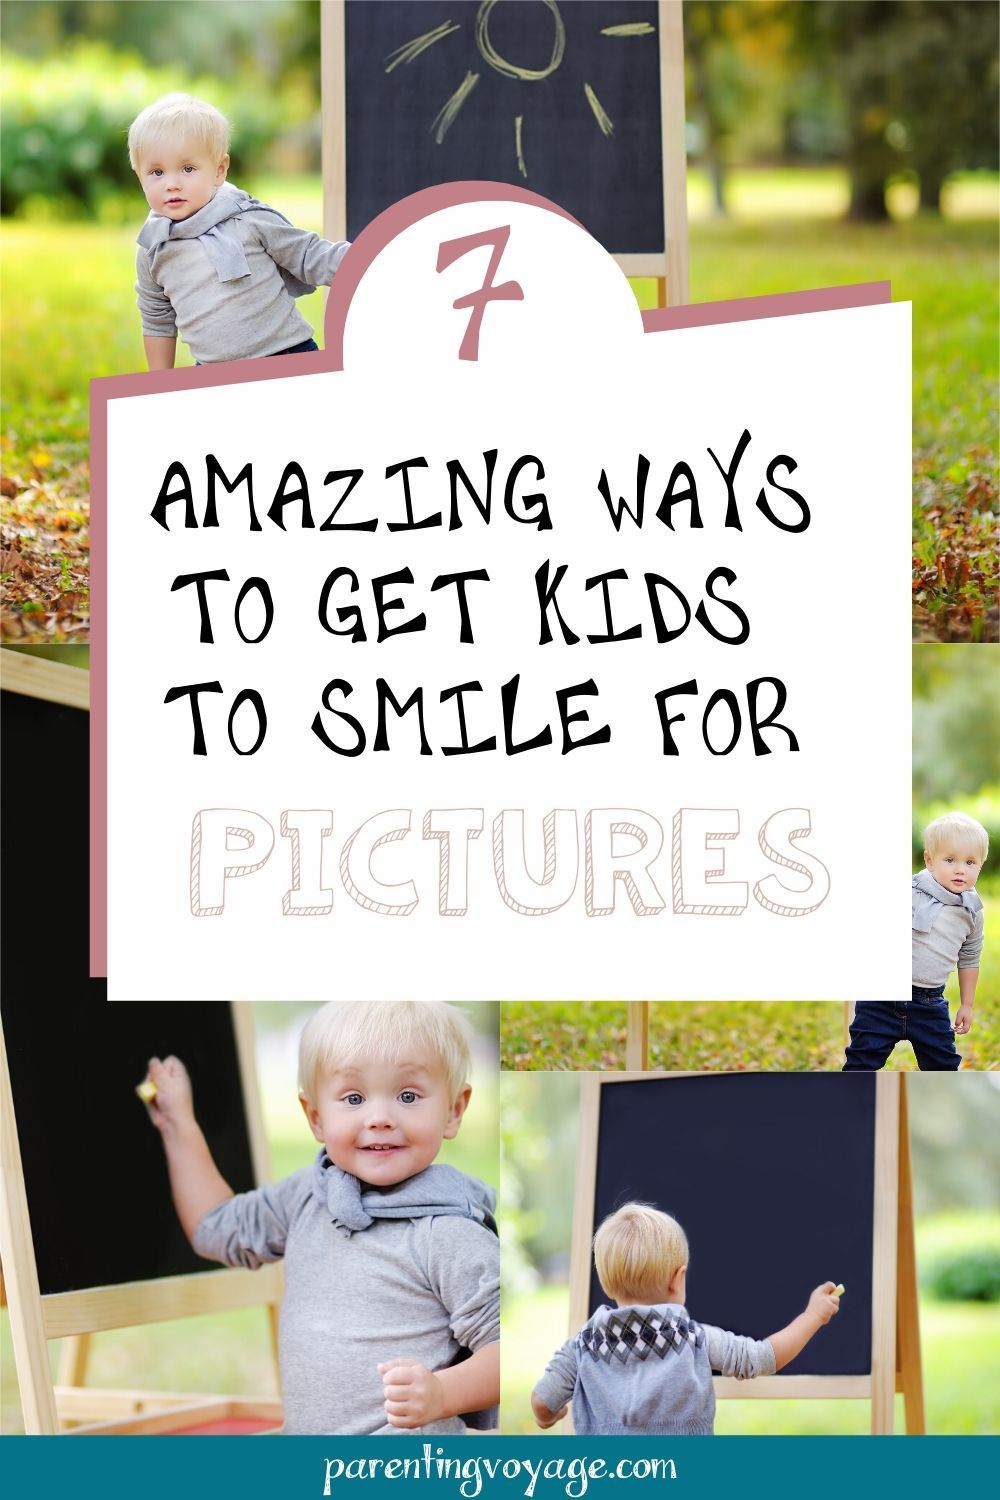 e8223dac8dc9fba93cb8391d5458e332 - How To Get A Toddler To Smile For Pictures